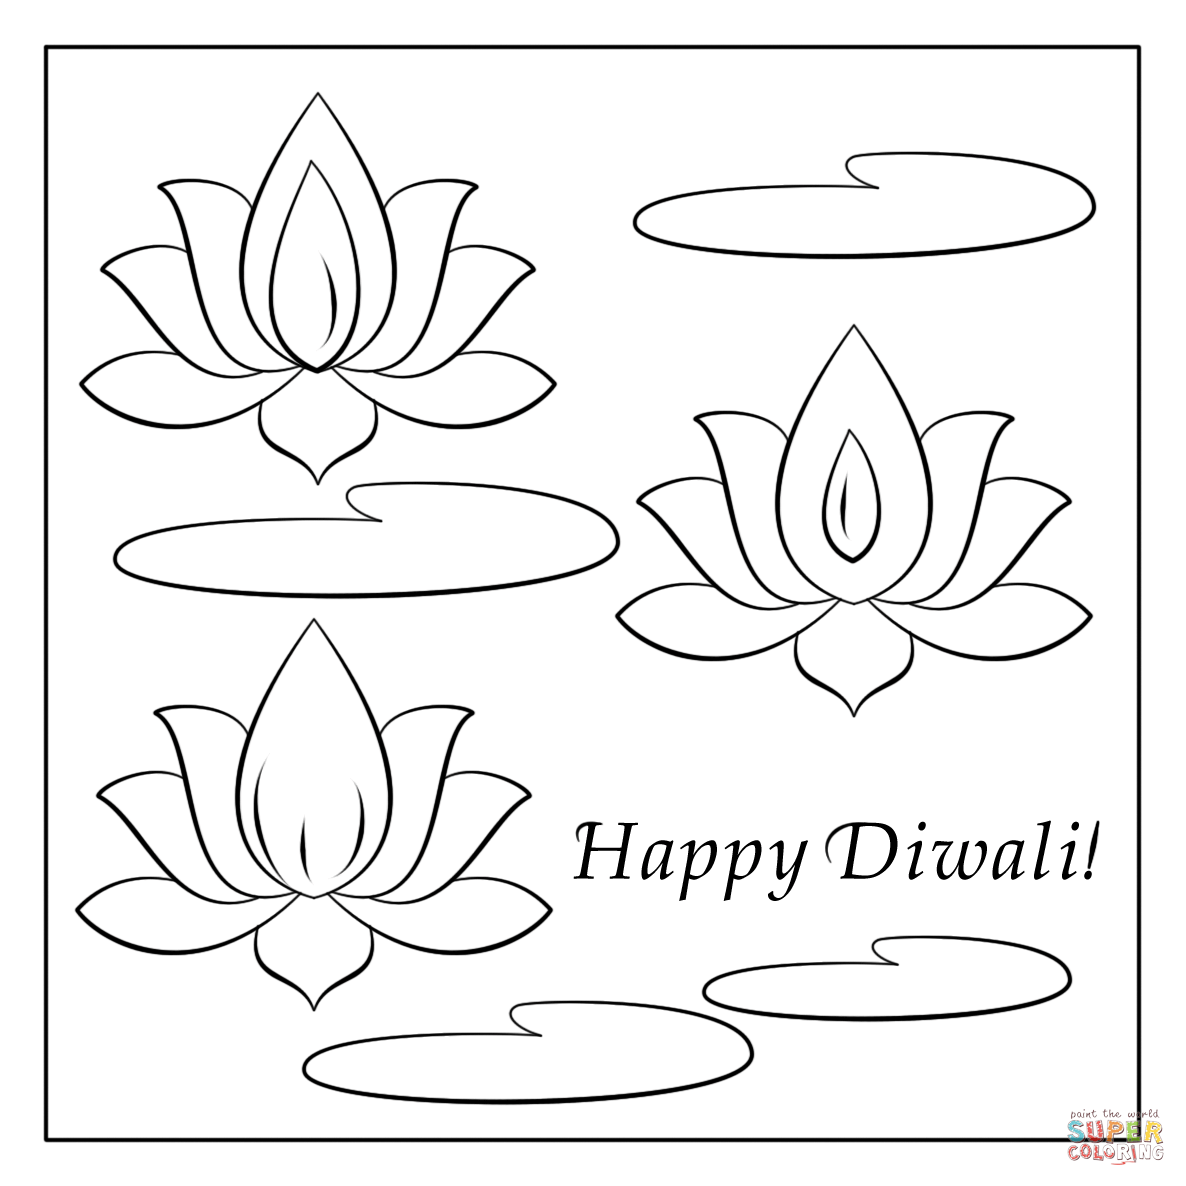 Happy Diwali Card Coloring Page Free Printable Pages Sketch Coloring ...